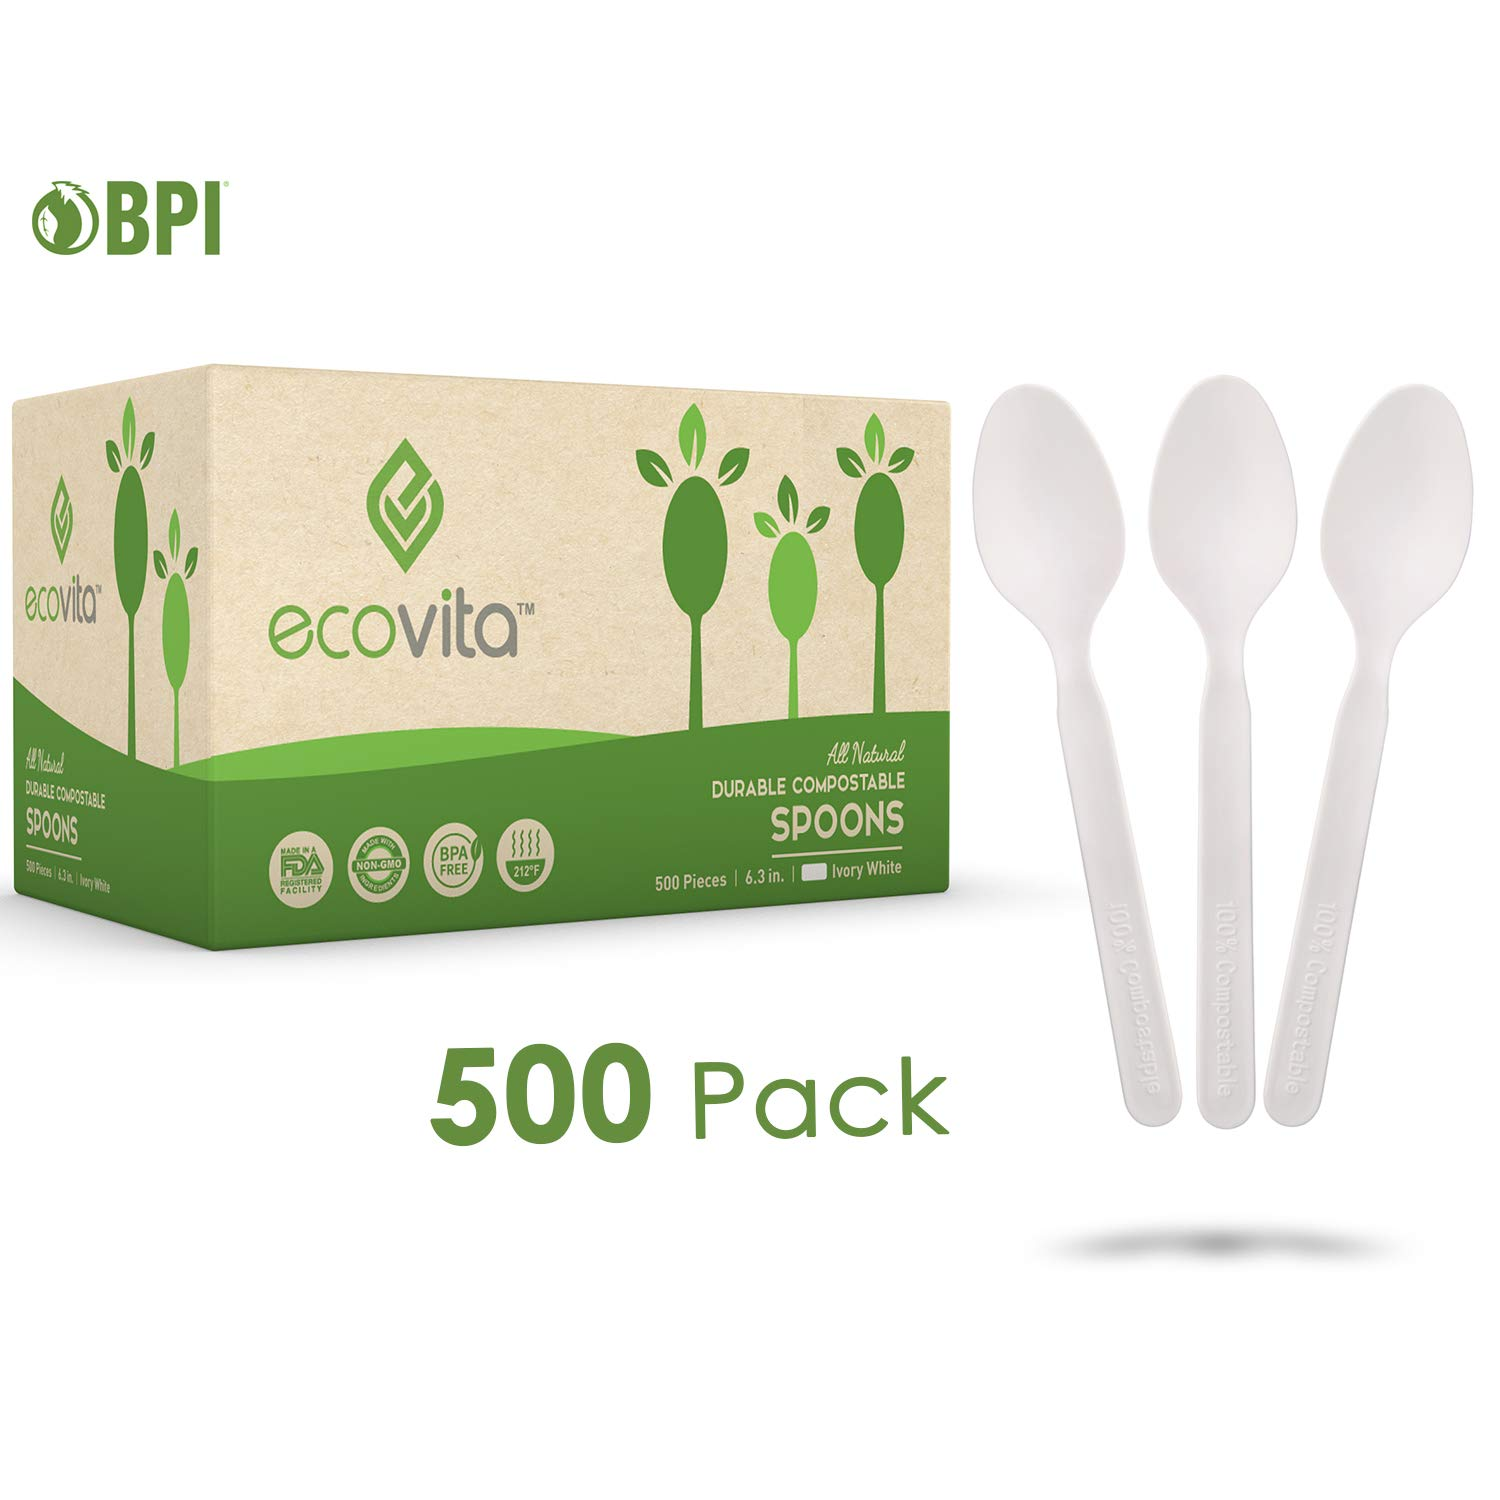 100% Compostable Spoons - 500 Large Disposable Utensils (6.5 in.) Bulk Size Eco Friendly Durable and Heat Resistant Plastic Spoons Alternative with Convenient Tray by Ecovita by Ecovita